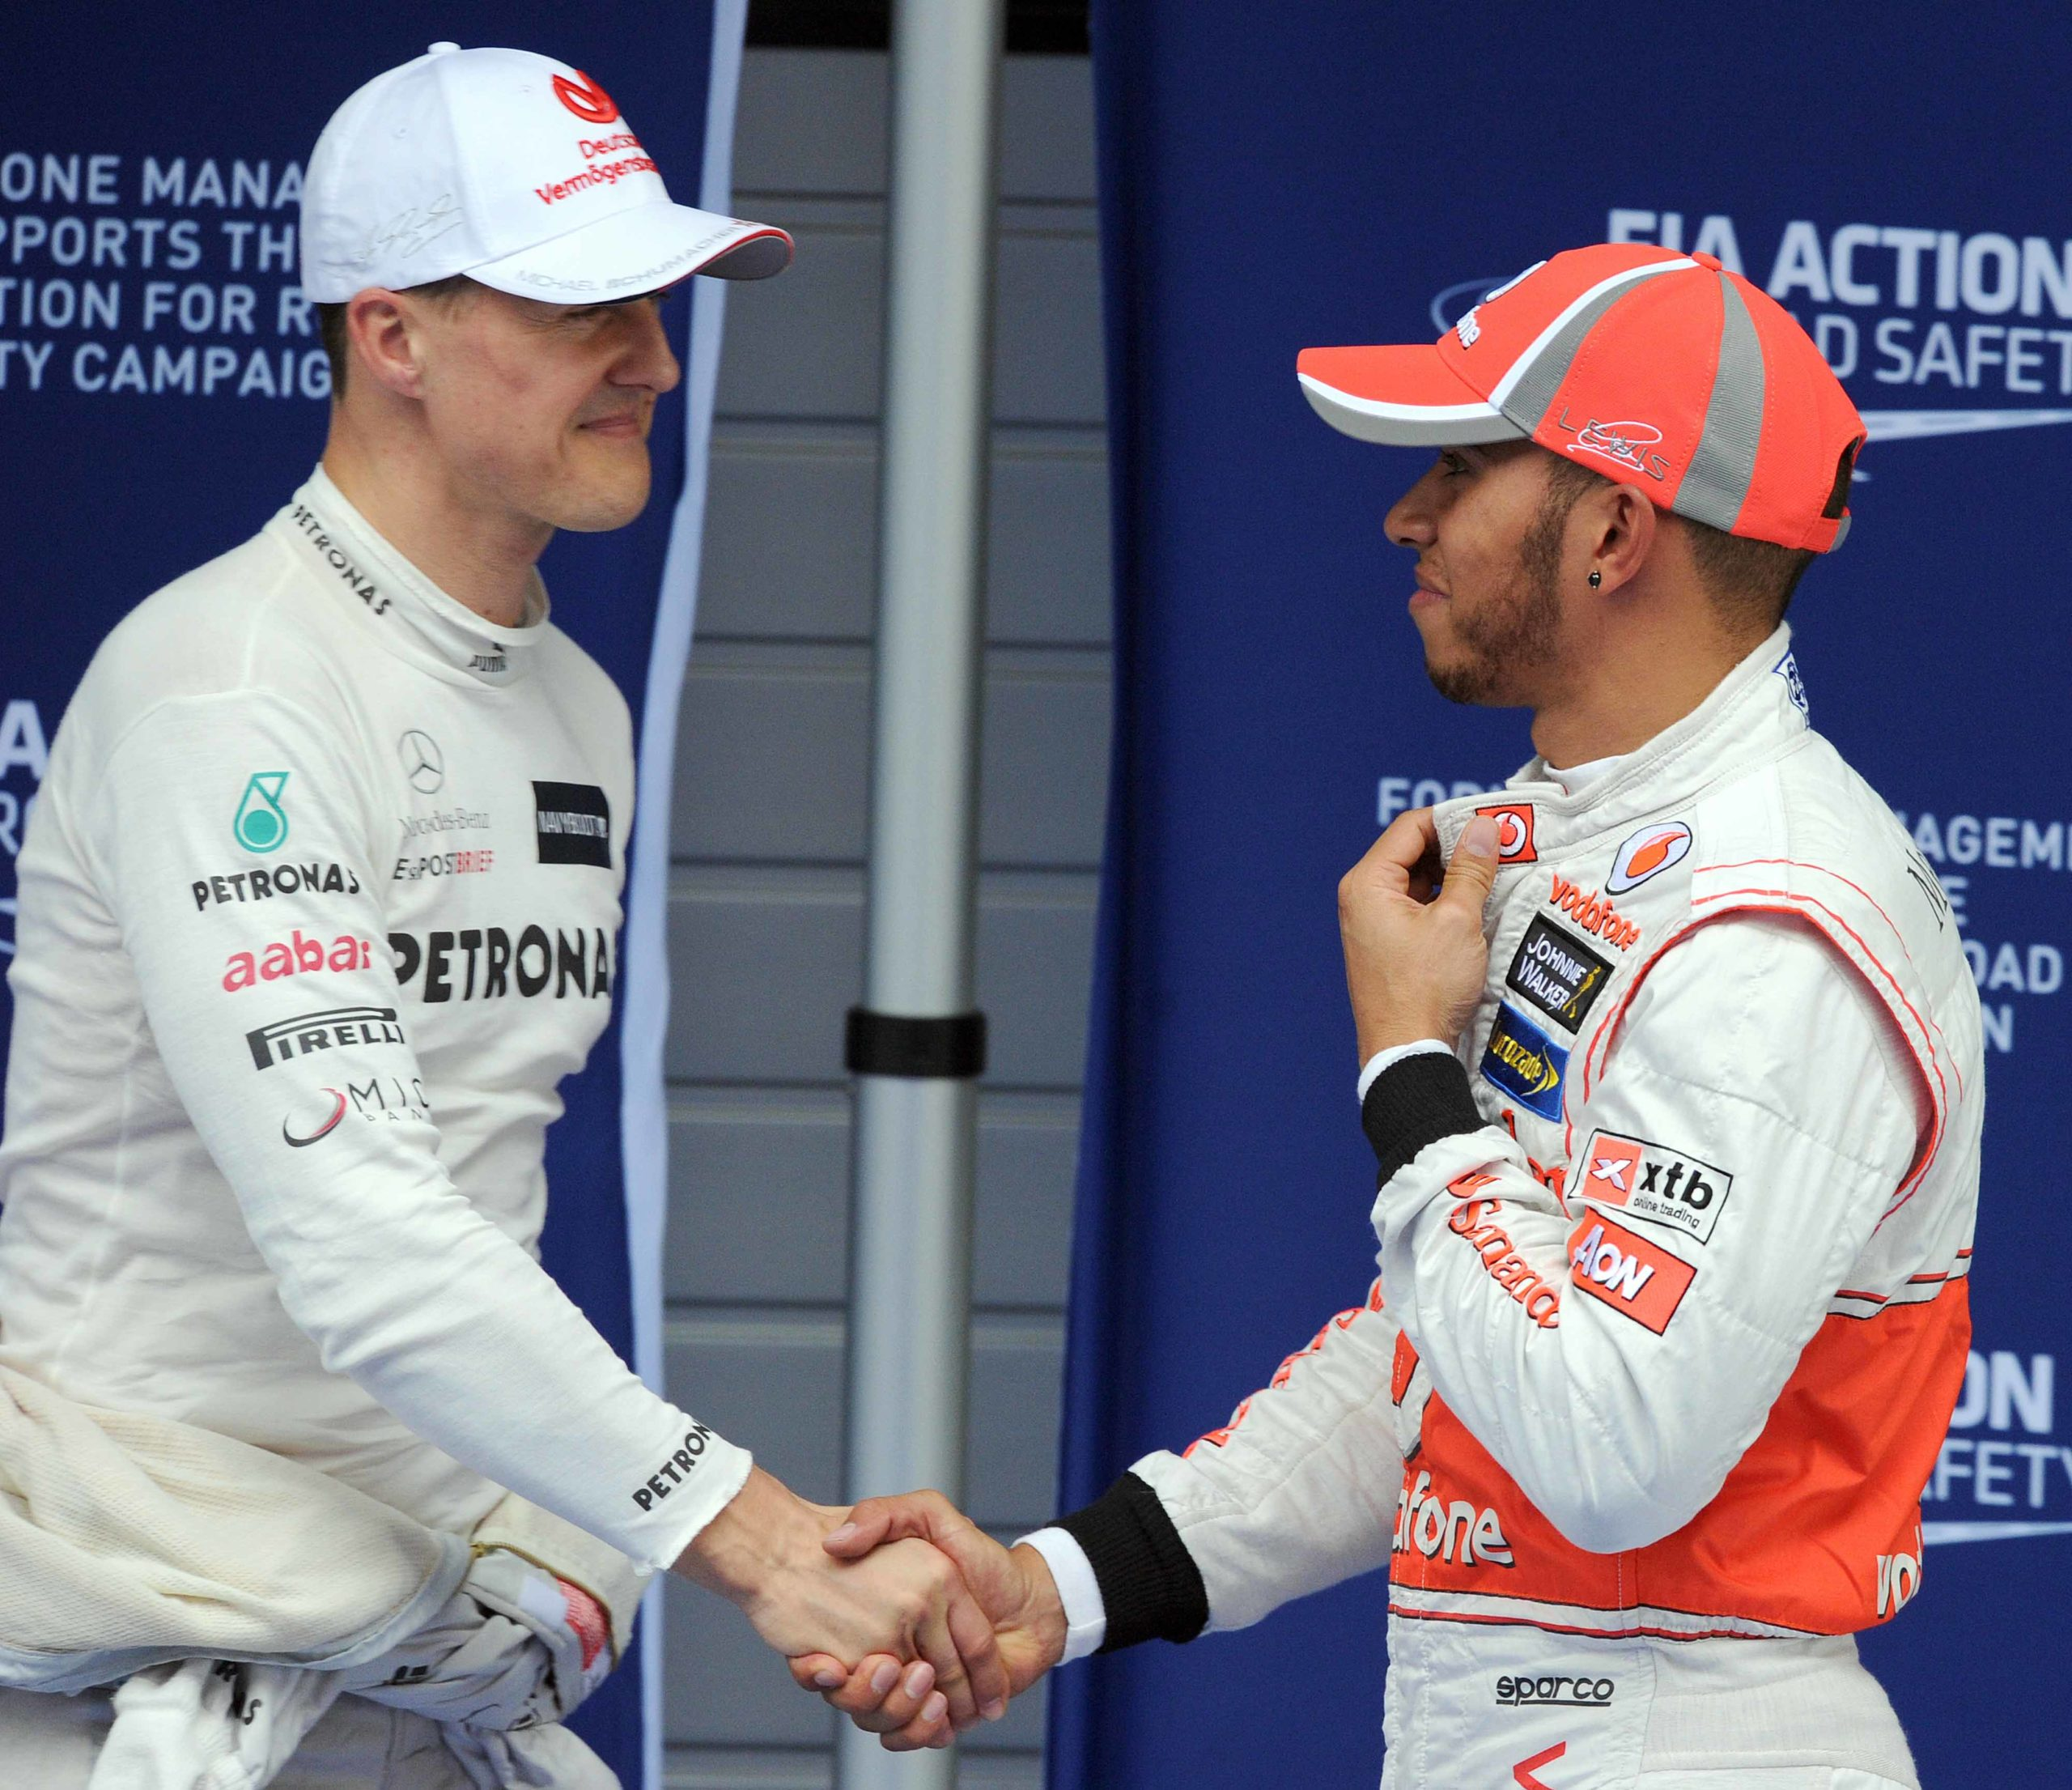 Lewis-Hamilton-and-Michael-Schumacher-shake-hands-in-Shanghai-ahed-of-the-2012-Chinese-Grand-Prix